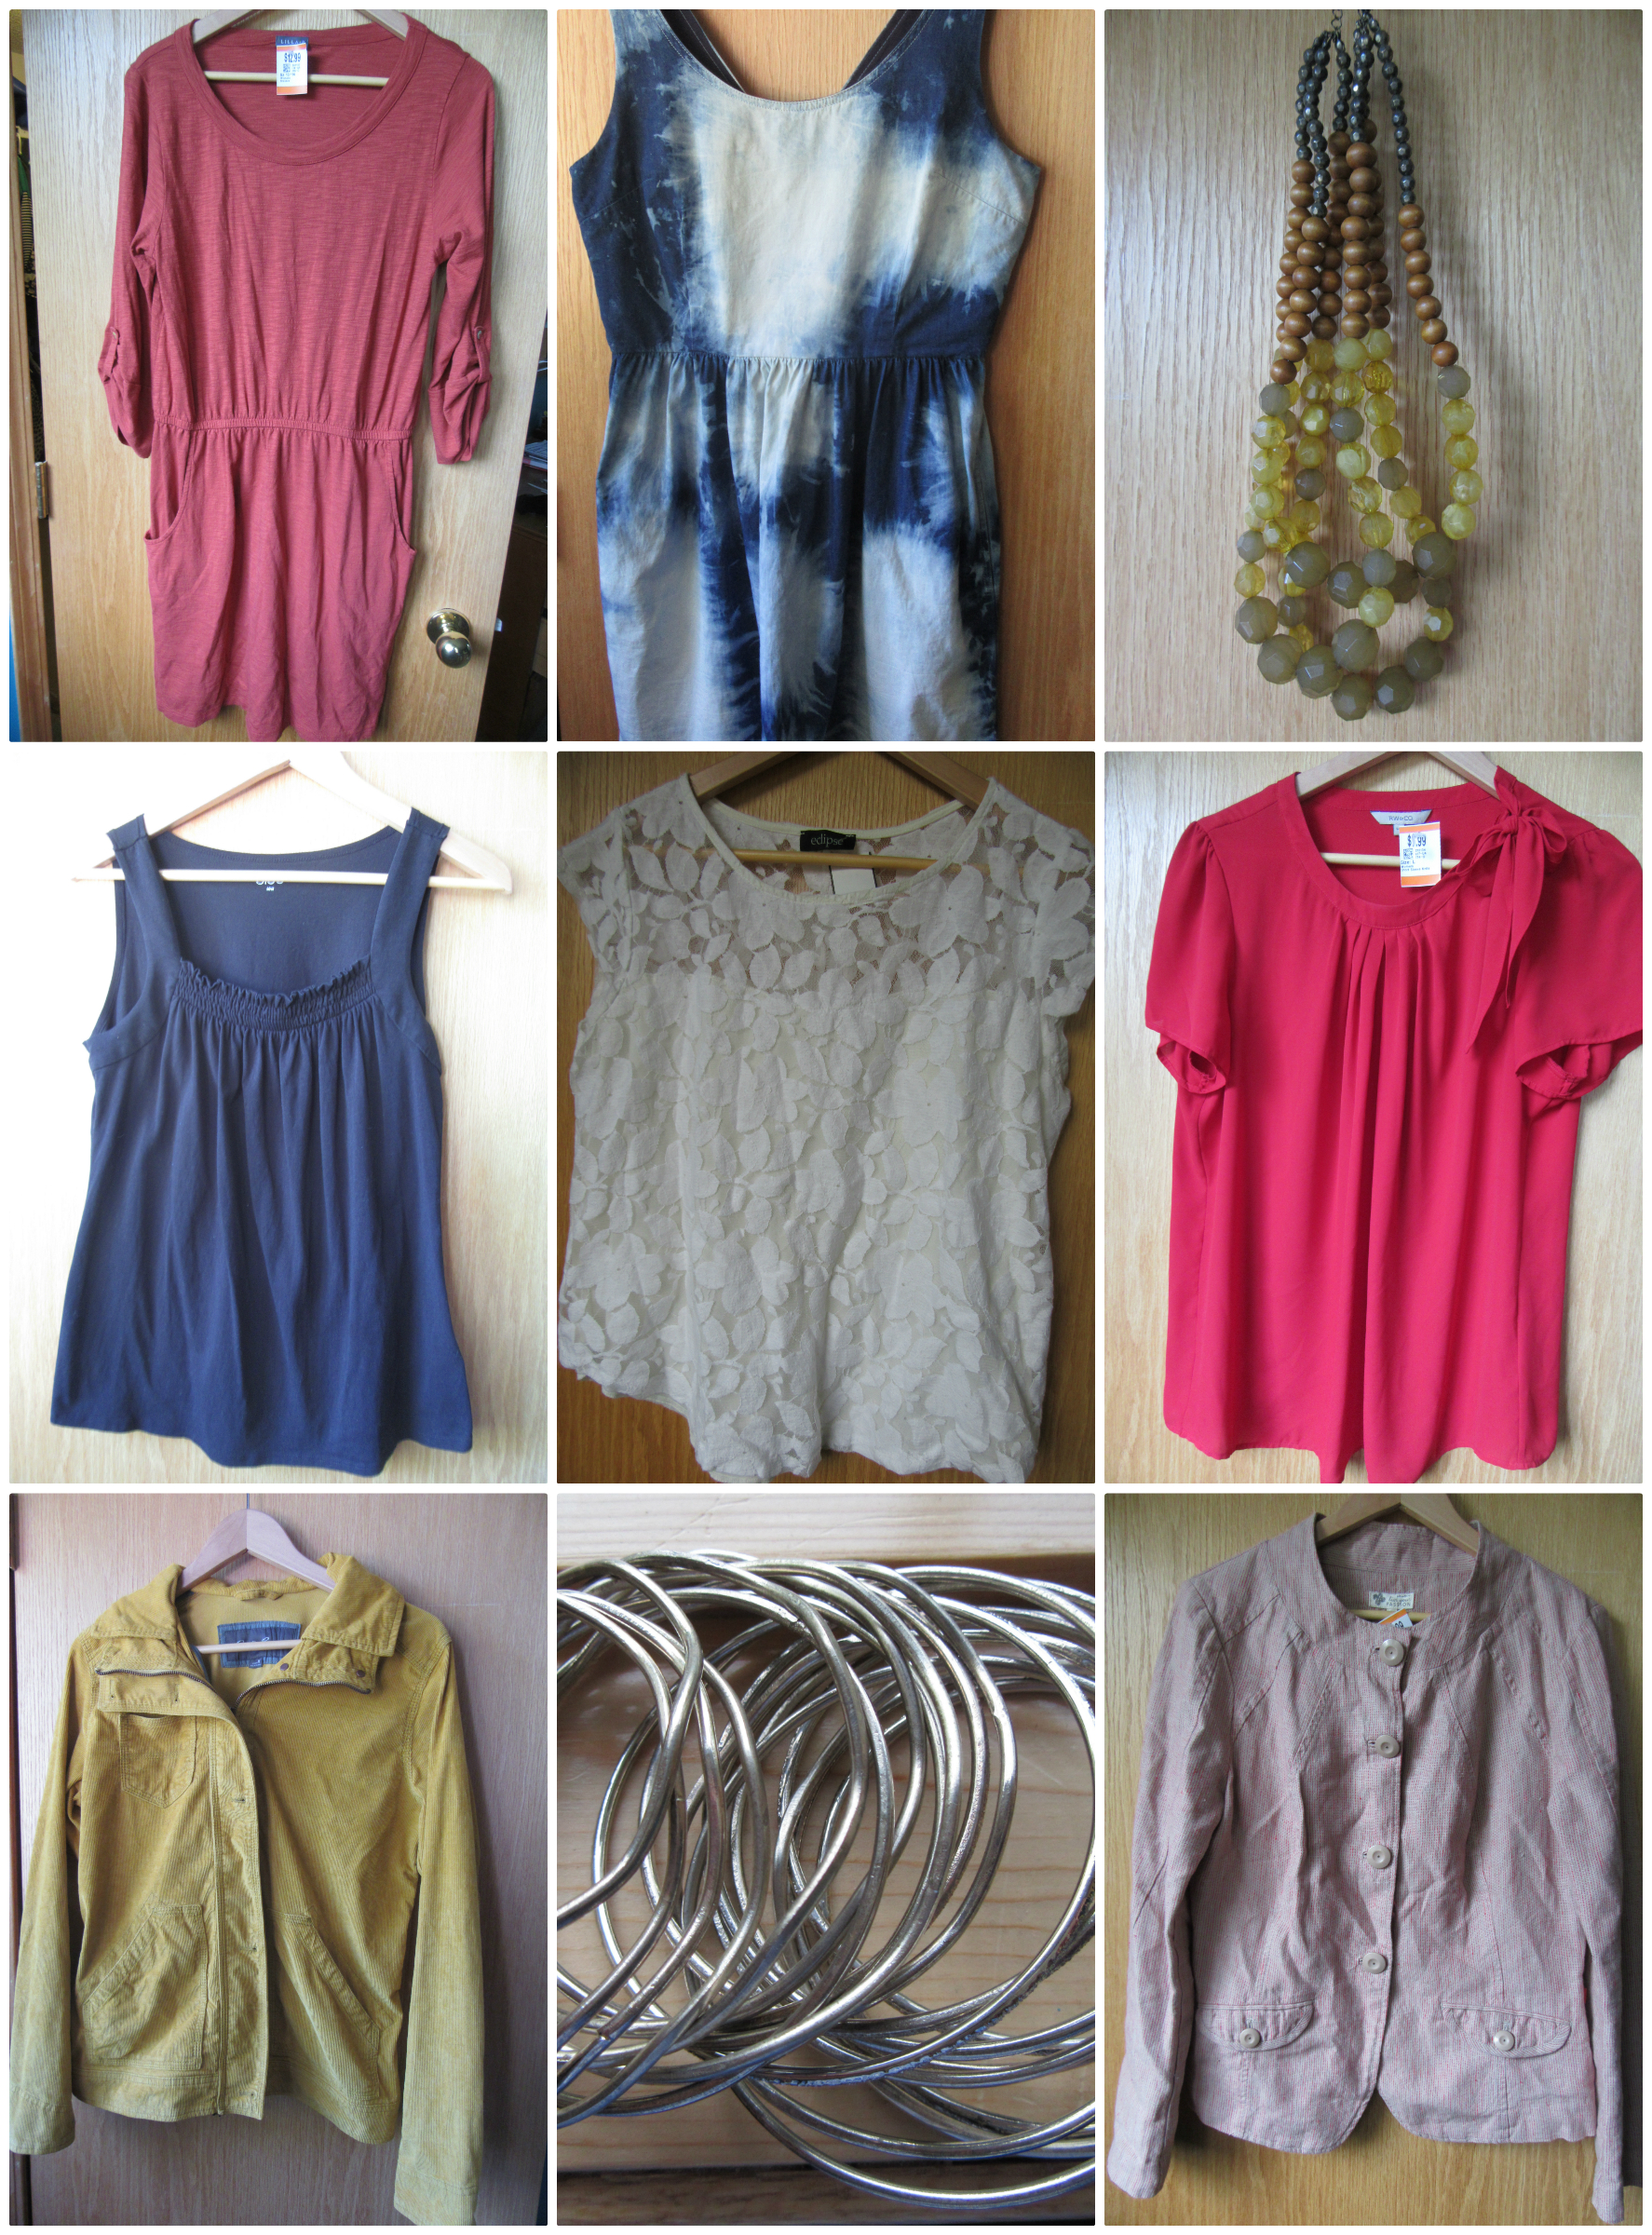 a9a33bba157 May Thrift Haul - The Spirited Thrifter